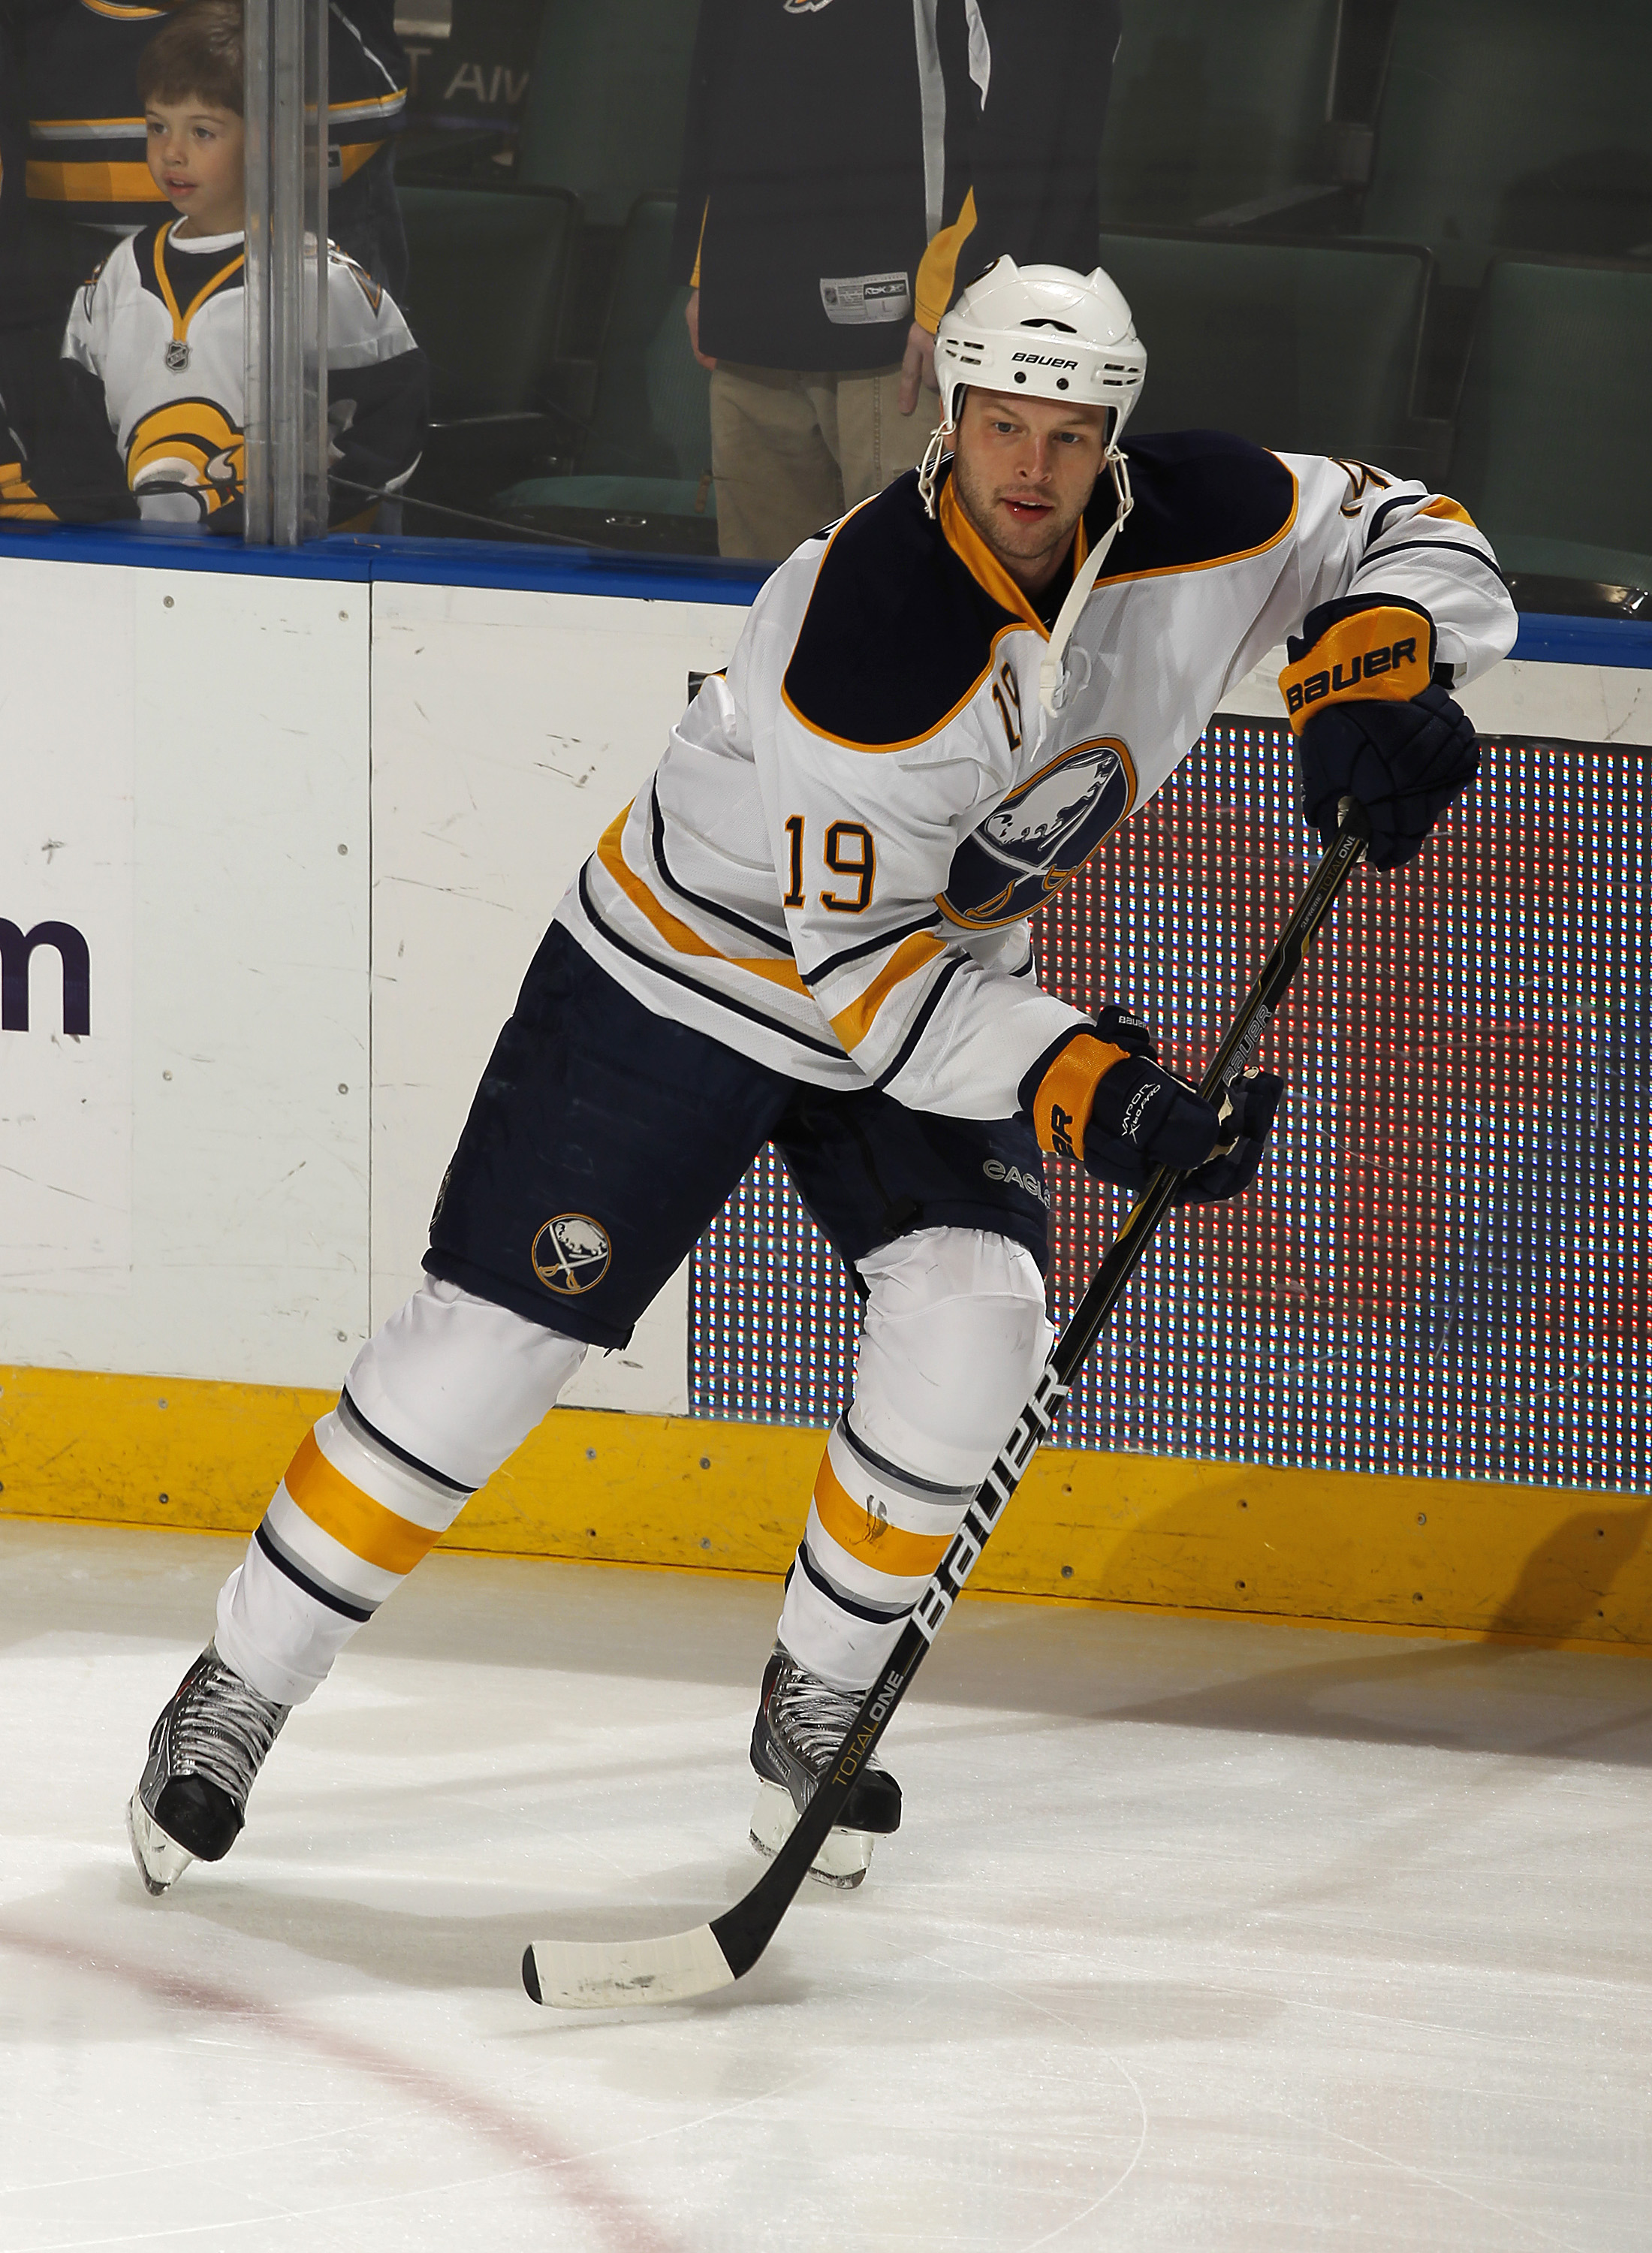 SUNRISE, FL - DECEMBER 17: Tim Connolly #19 of the Buffalo Sabres skates prior to the game against the Florida Panthers on December 17, 2010 at the BankAtlantic Center in Sunrise, Florida. (Photo by Joel Auerbach/Getty Images)